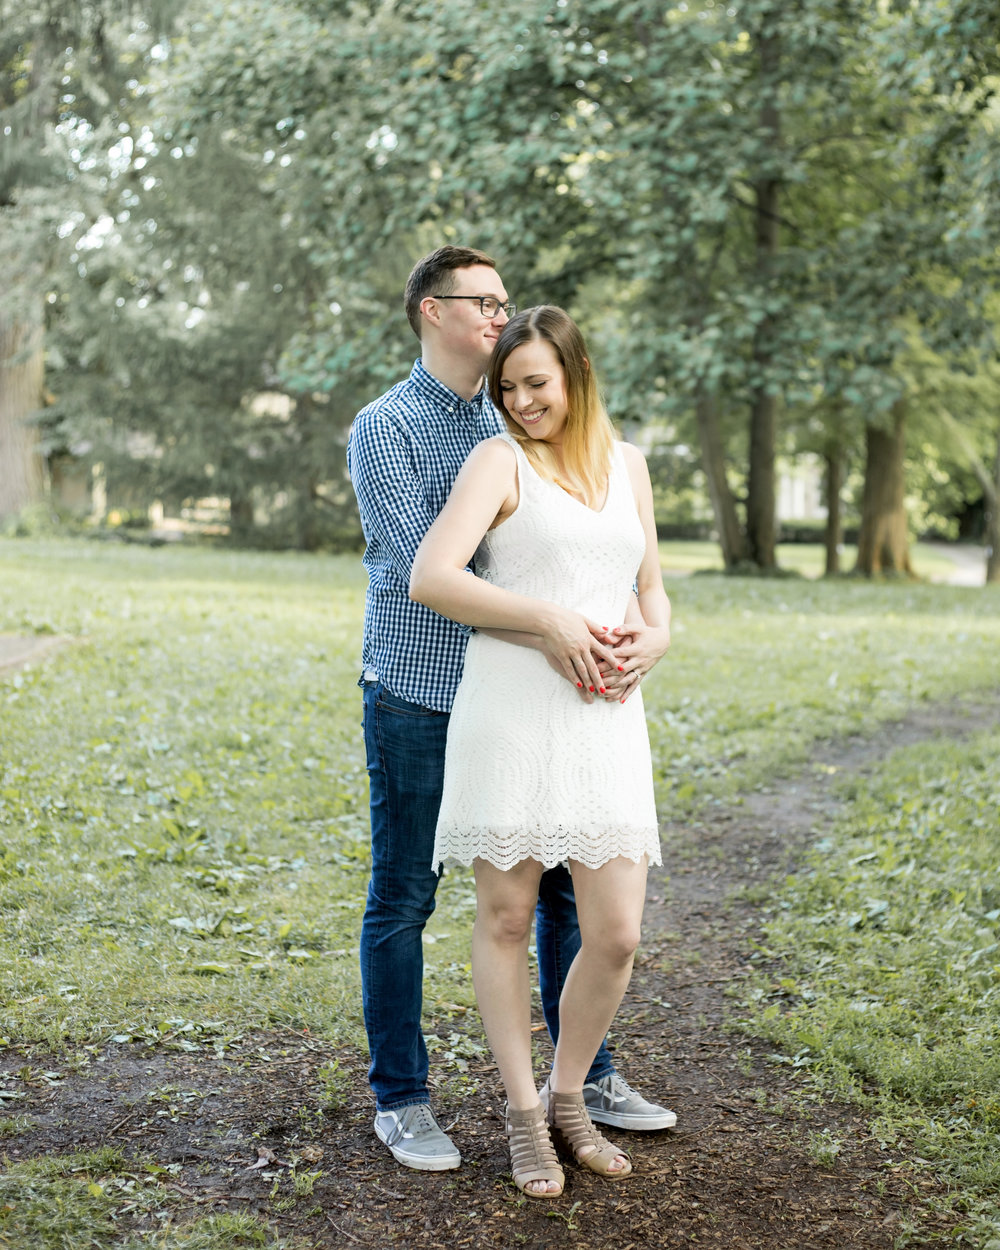 Lauraengagement-105.jpg